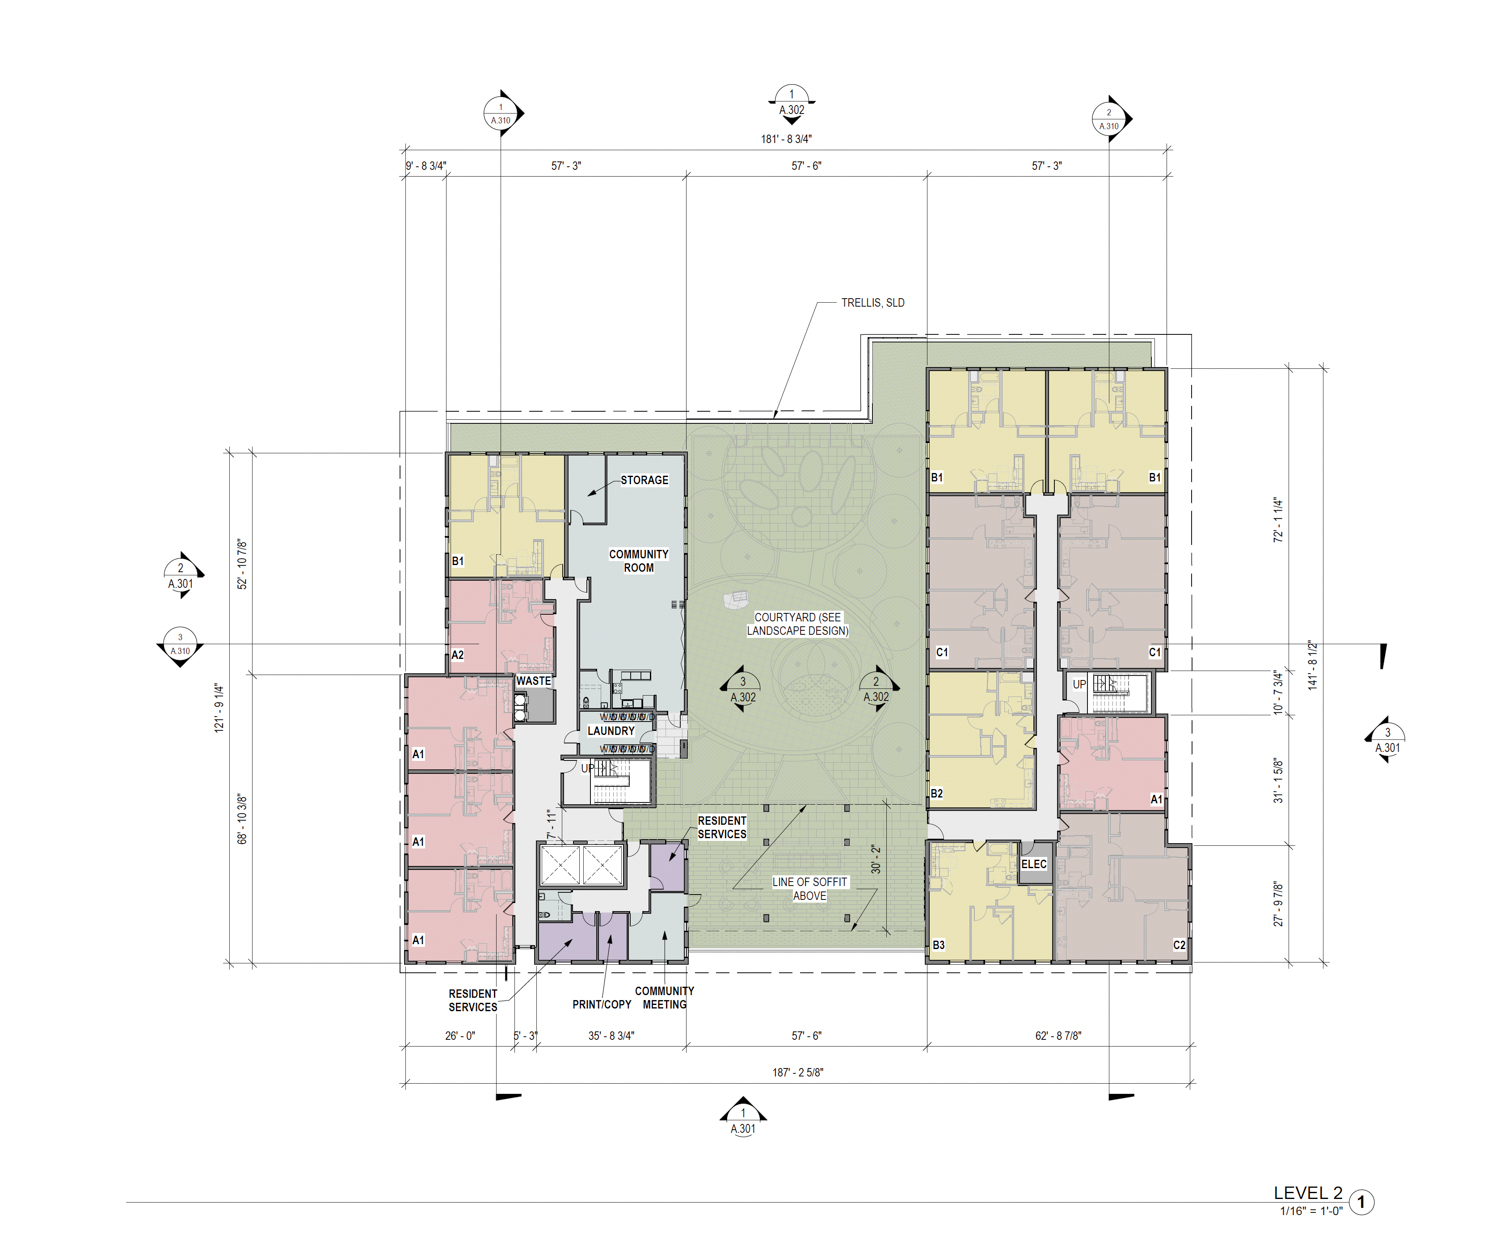 2700 International Boulevard second-level floor plan with interior courtyard, design by Pyatok Architects